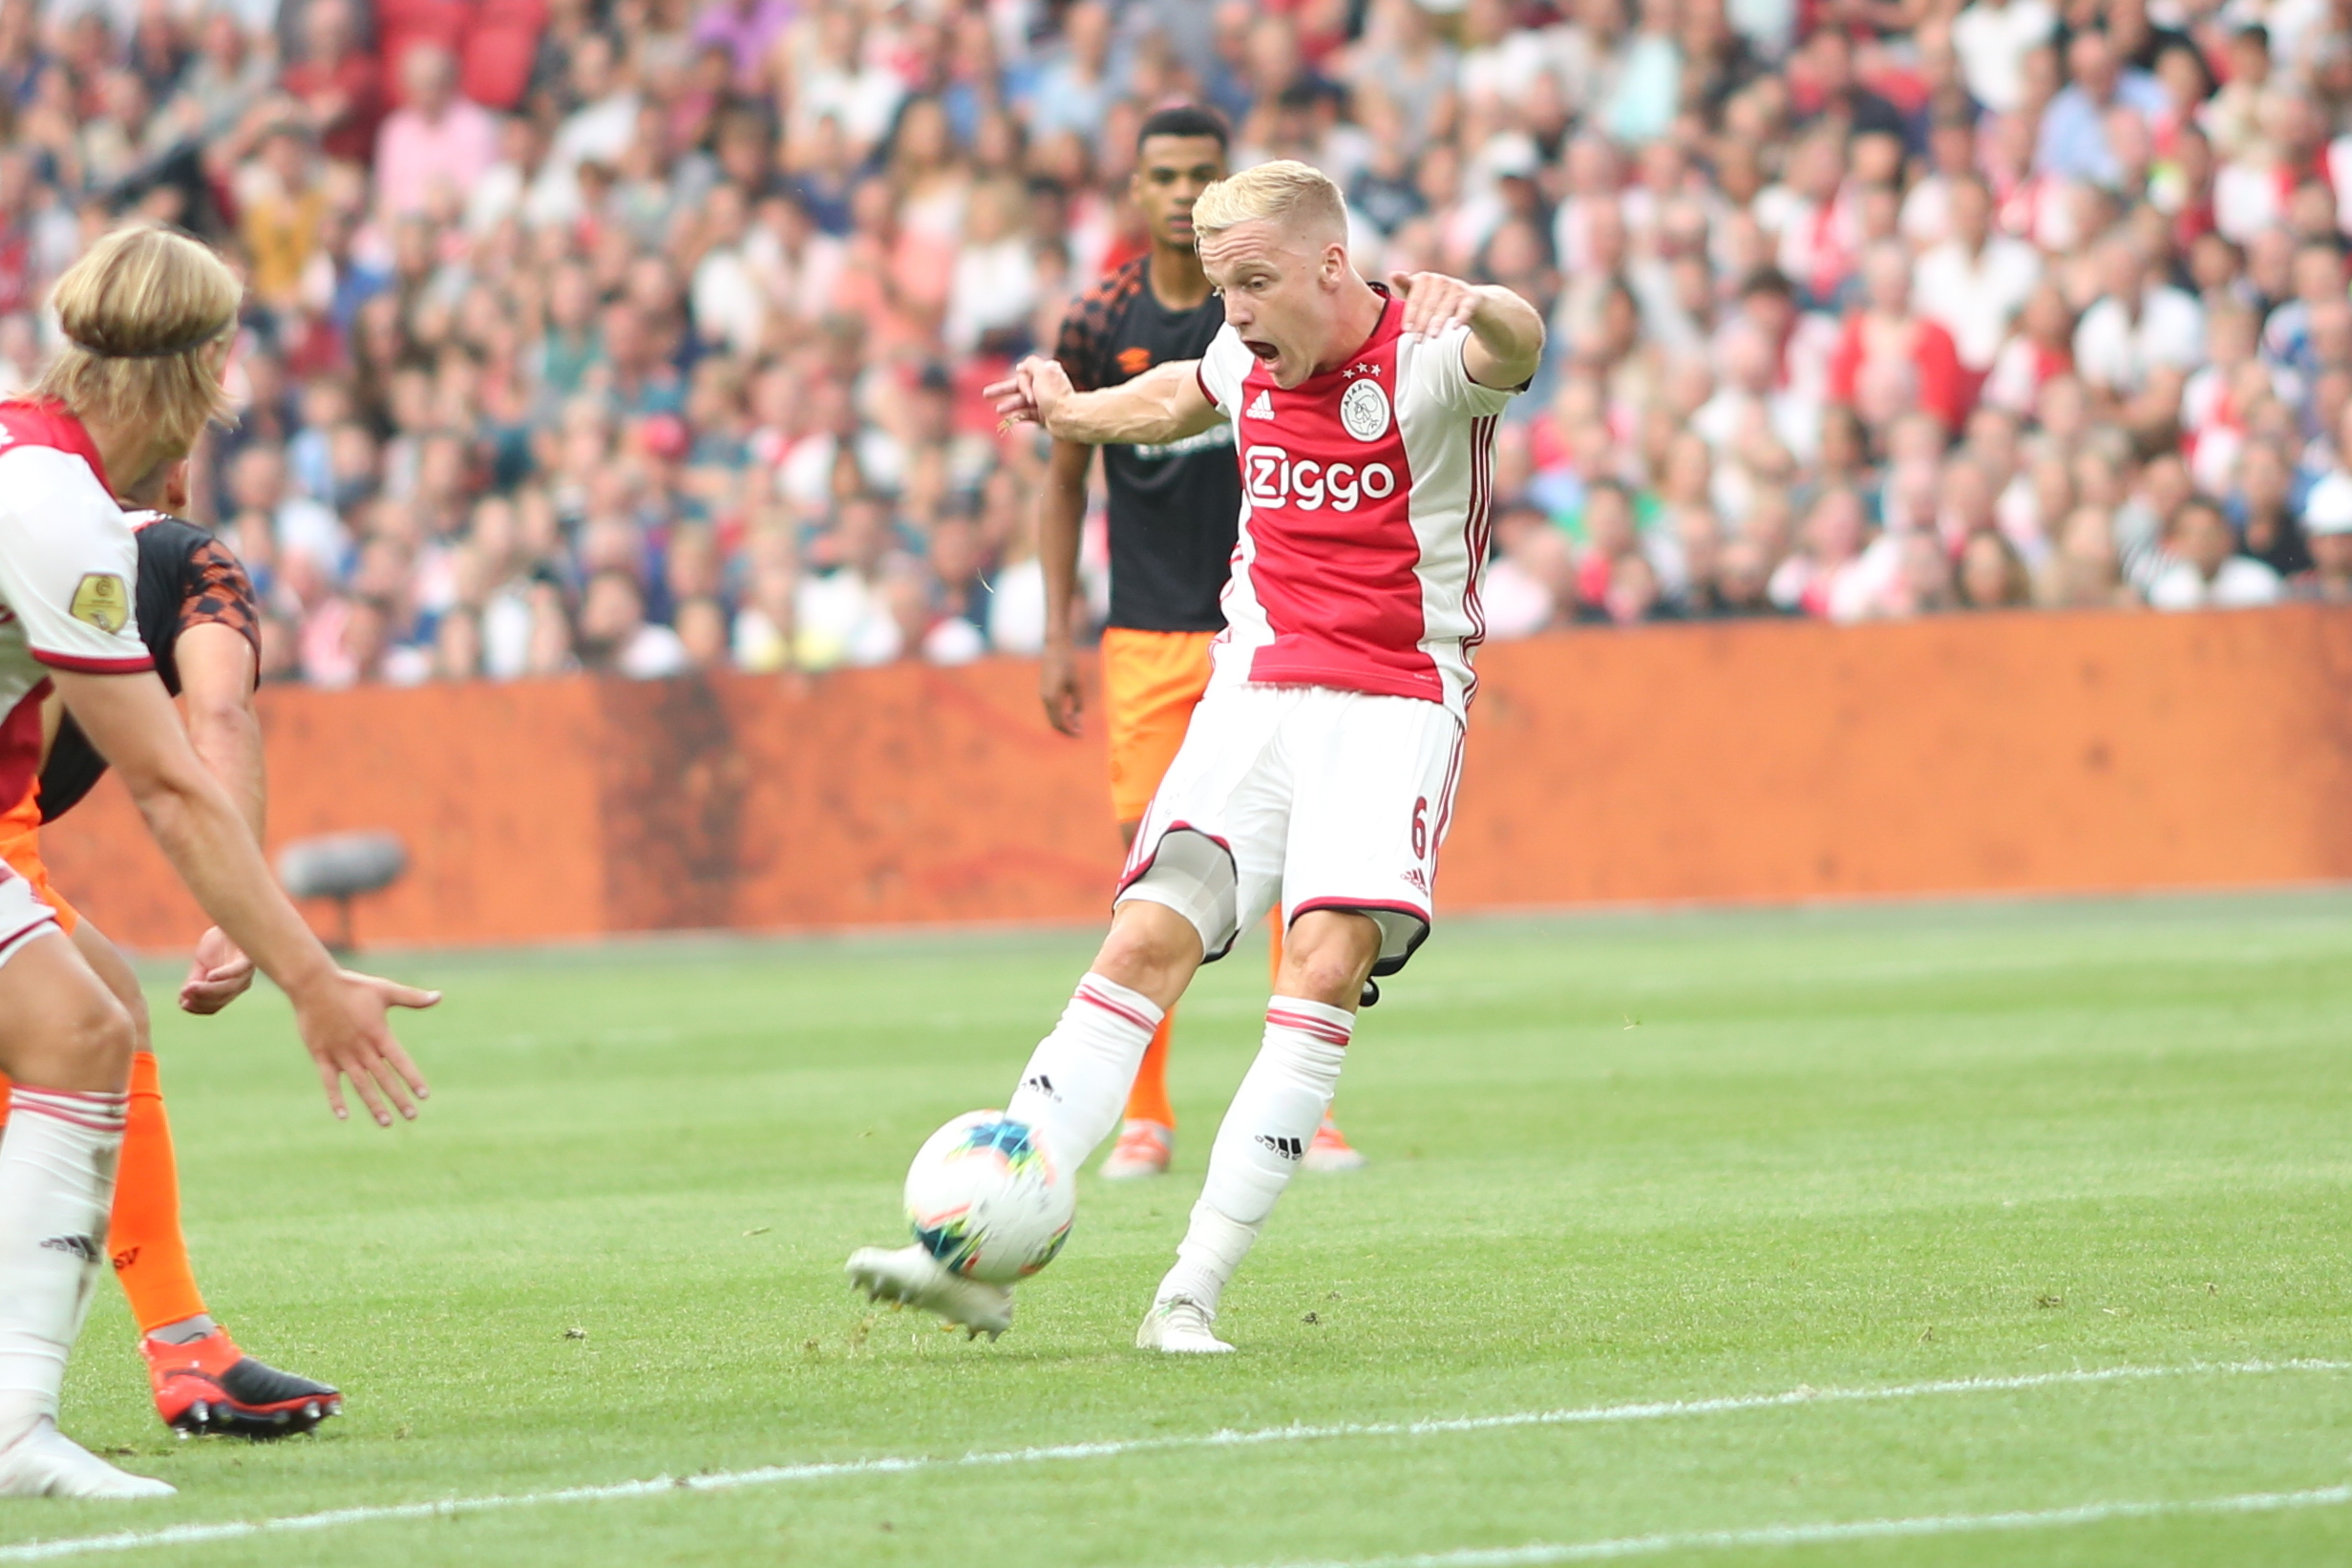 Ajax coach Ten Hag: Van de Beek must stay